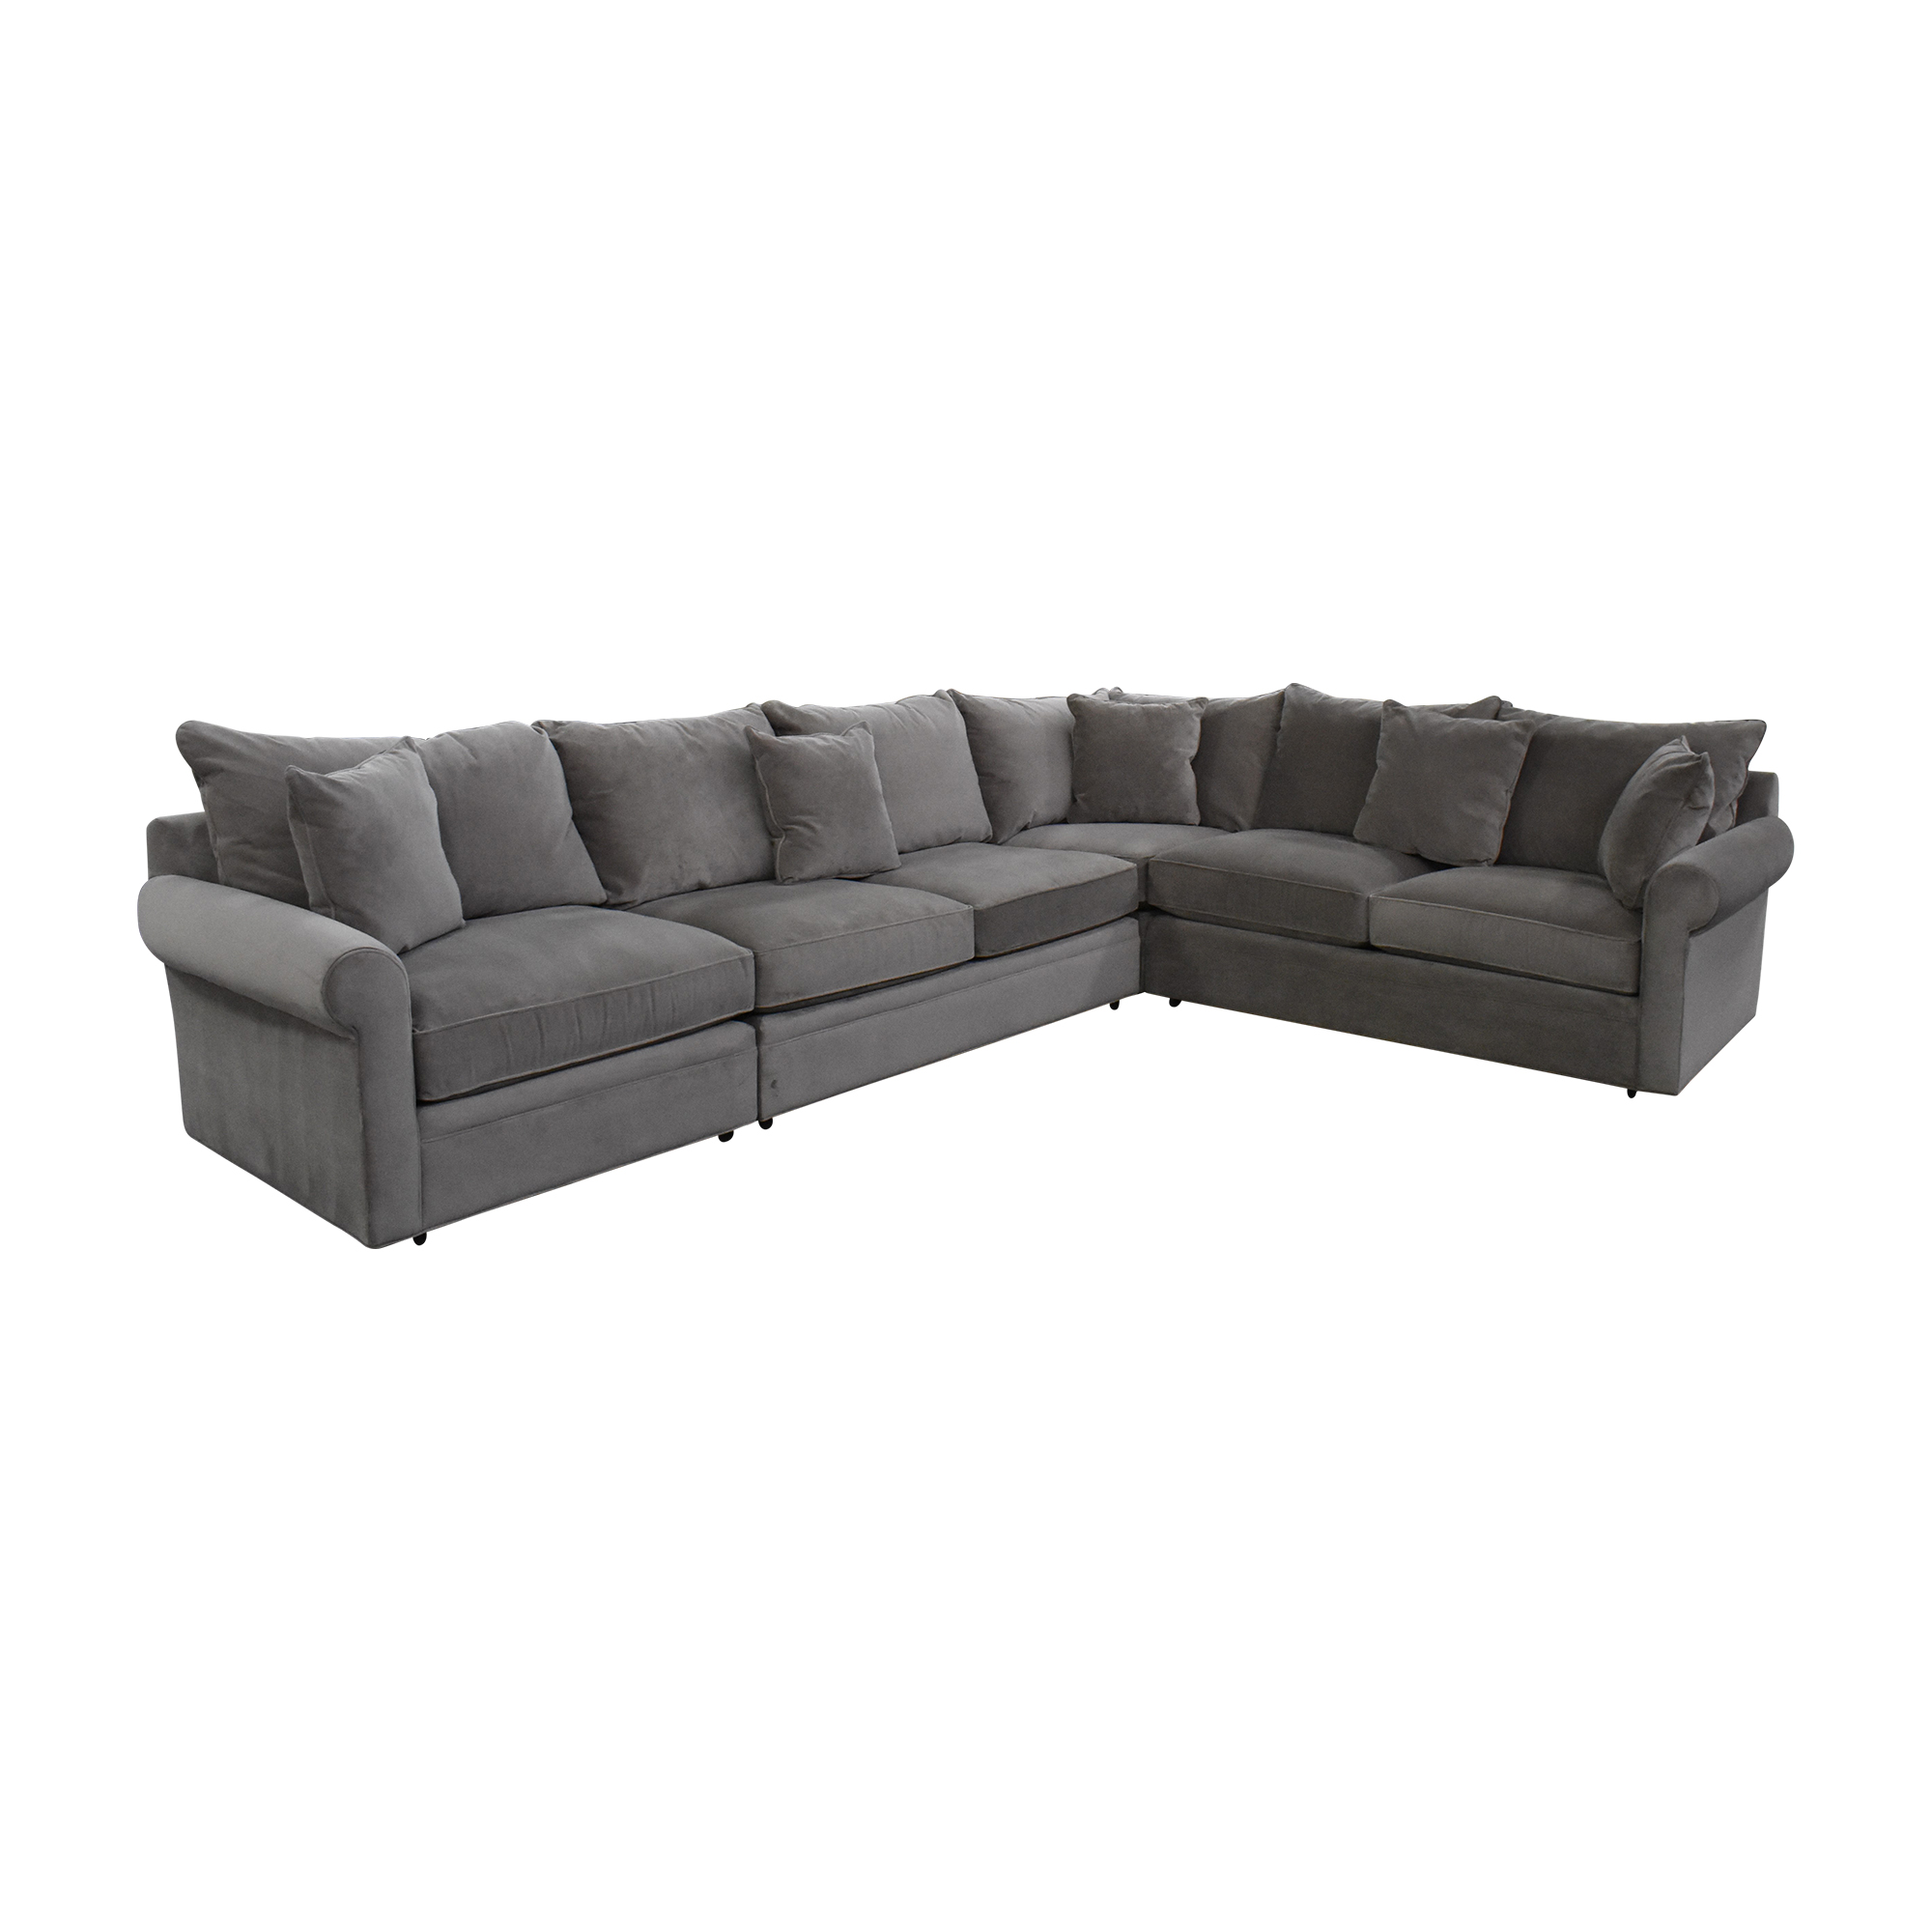 shop Macy's Macy's Modern Concepts L Shaped Sectional Sofa online